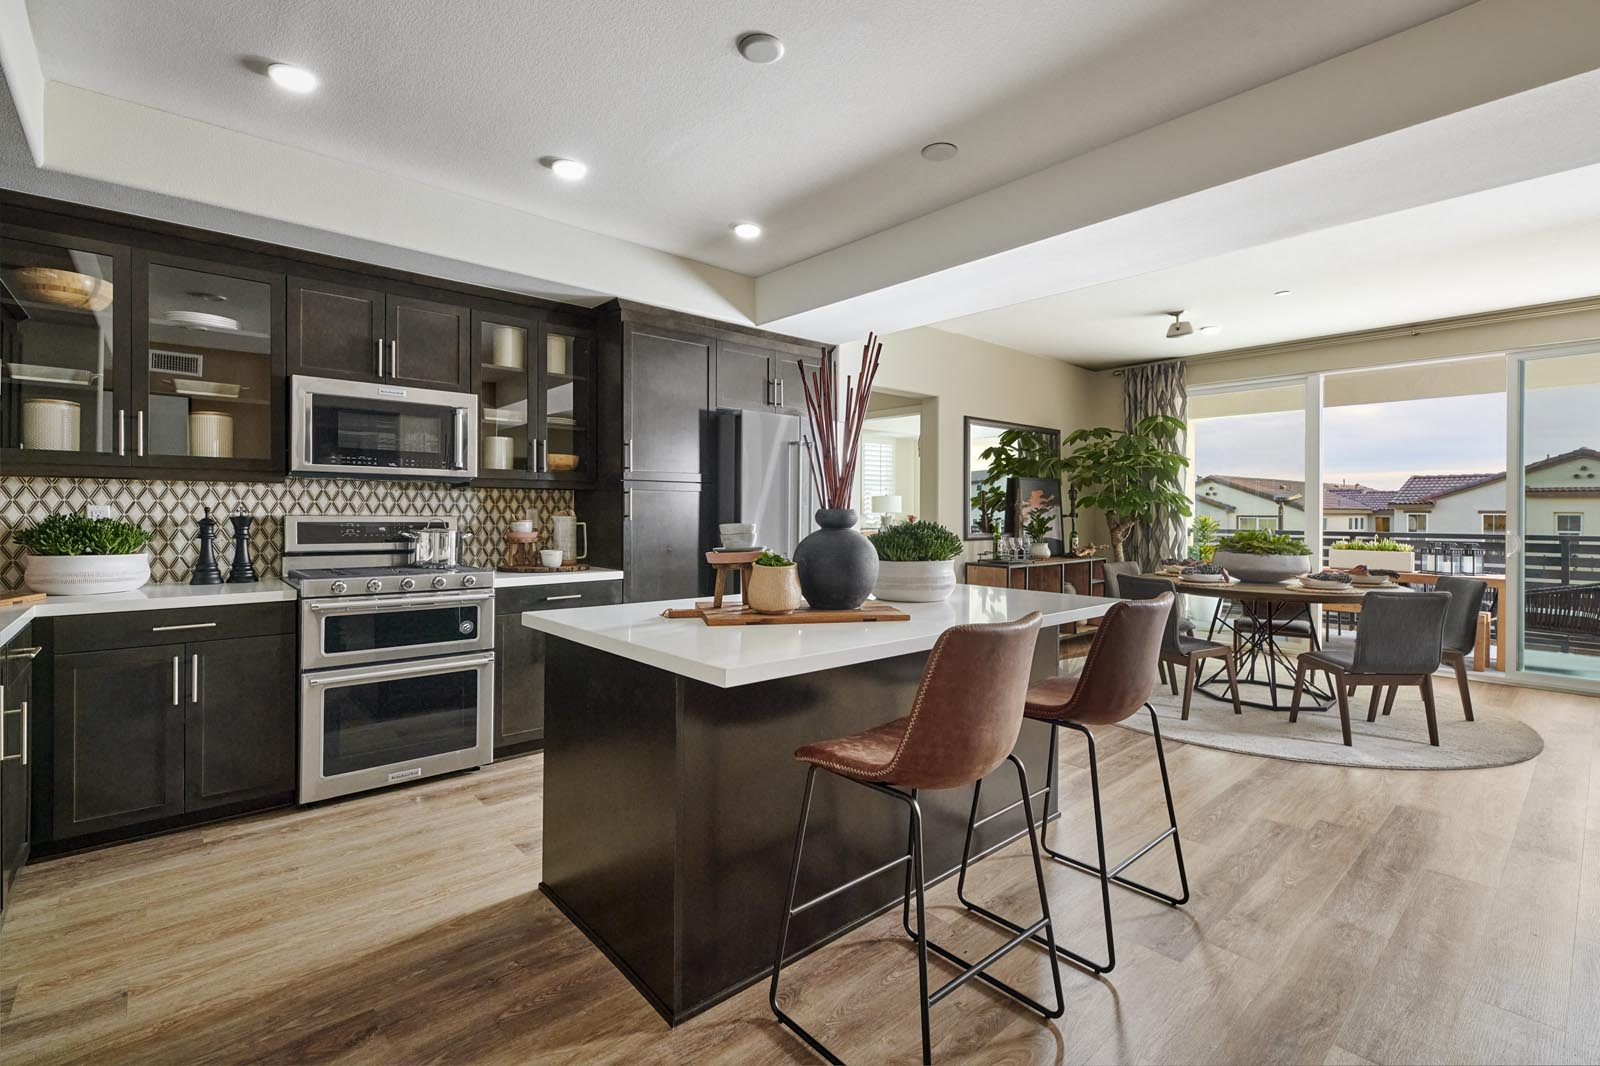 Kitchen to Dining Area | Residence 5 | Aspire | New Homes in Rancho Cucamonga, CA | Van Daele Homes